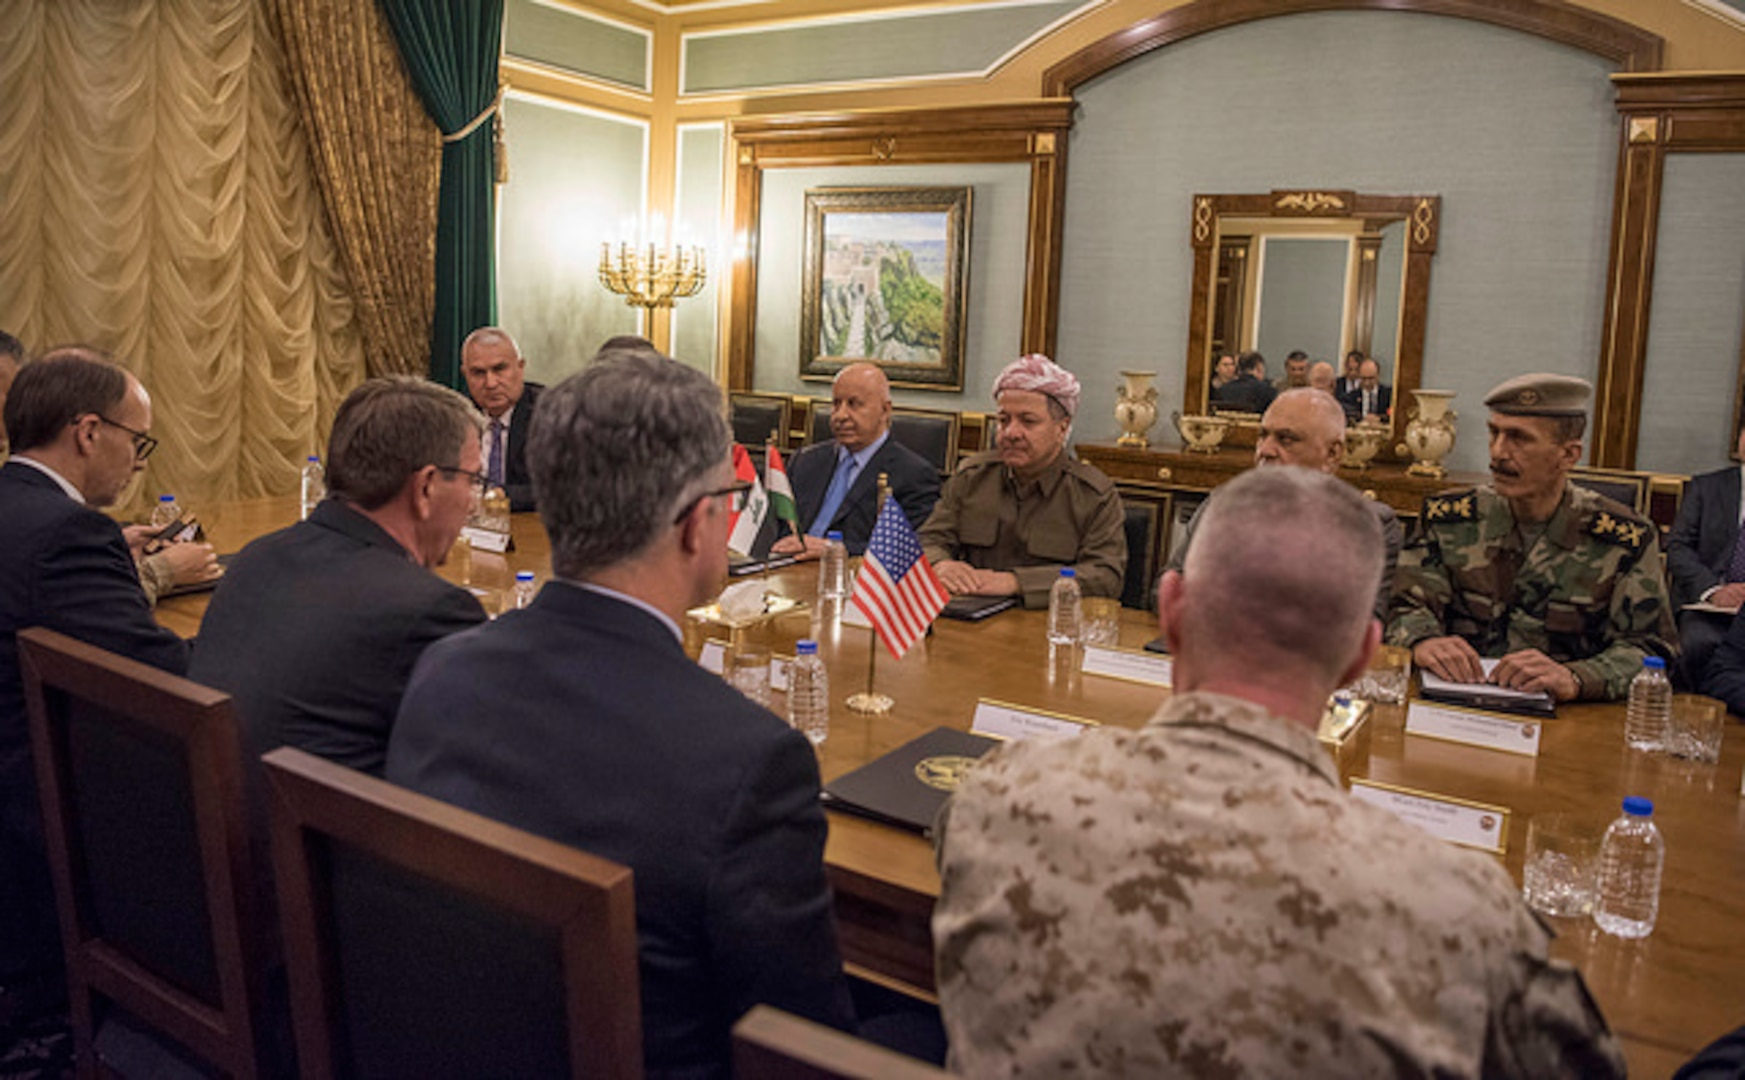 Defense Secretary Ash Carter and Kurdistan Regional Government President Masoud Barzani meet in Irbil, Iraq, Dec. 11, 2016. DoD photo by Air Force Tech. Sgt. Brigitte N. Brantley